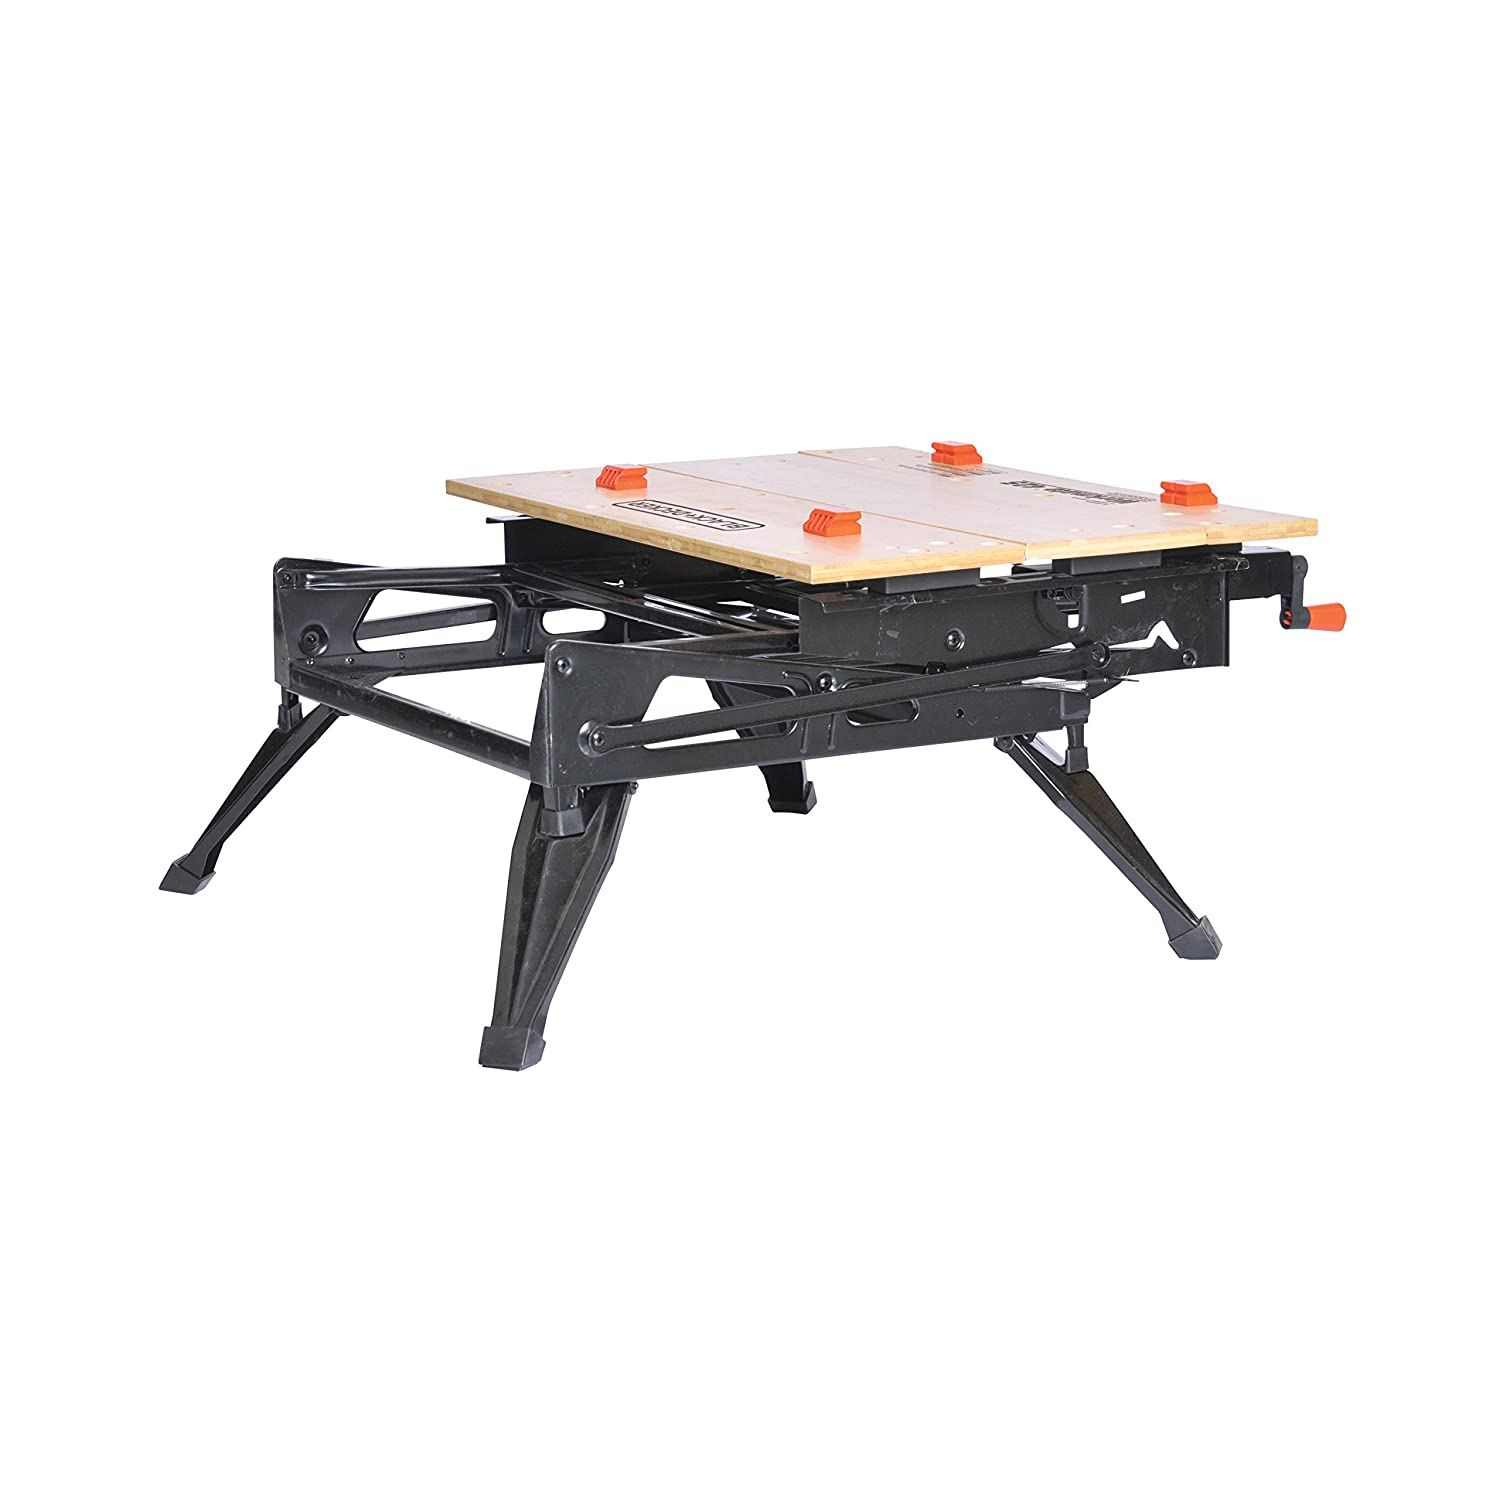 Black and decker workmate 1000 review - Black Decker Wm425 Workmate 425 550 Pound Capacity Portable Work Bench Amazon Com